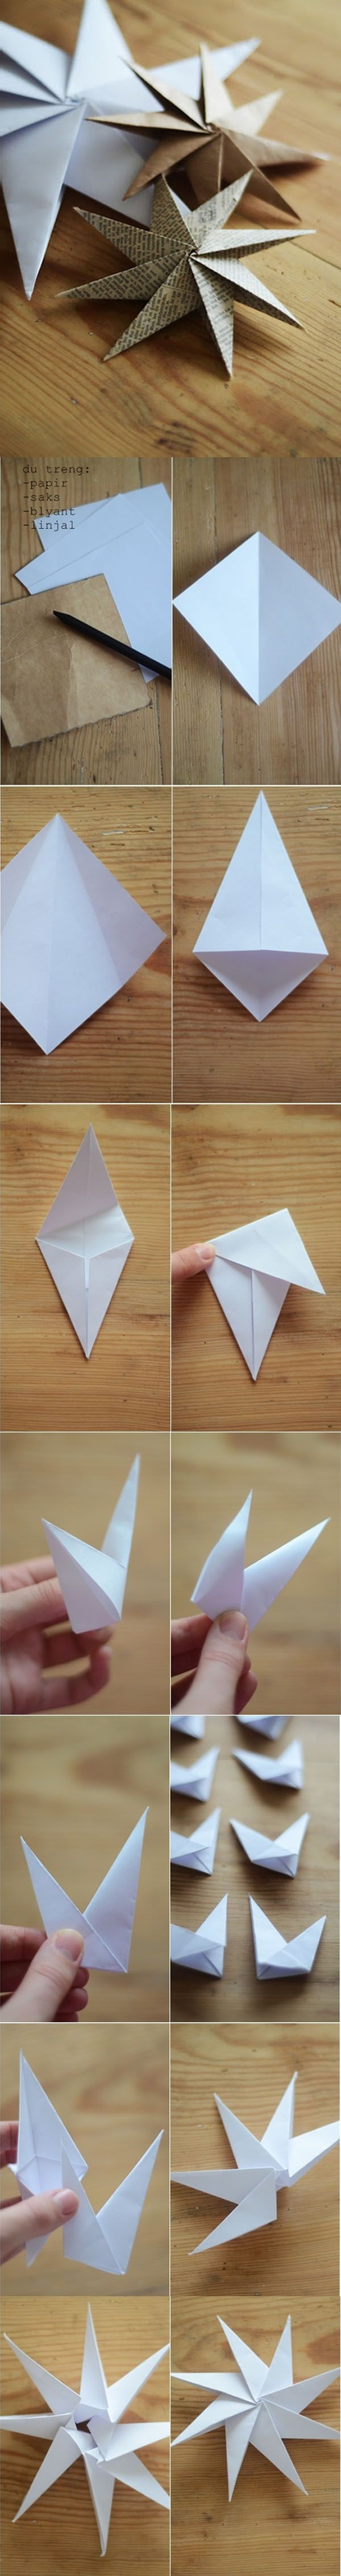 Paper Craft Ideas10